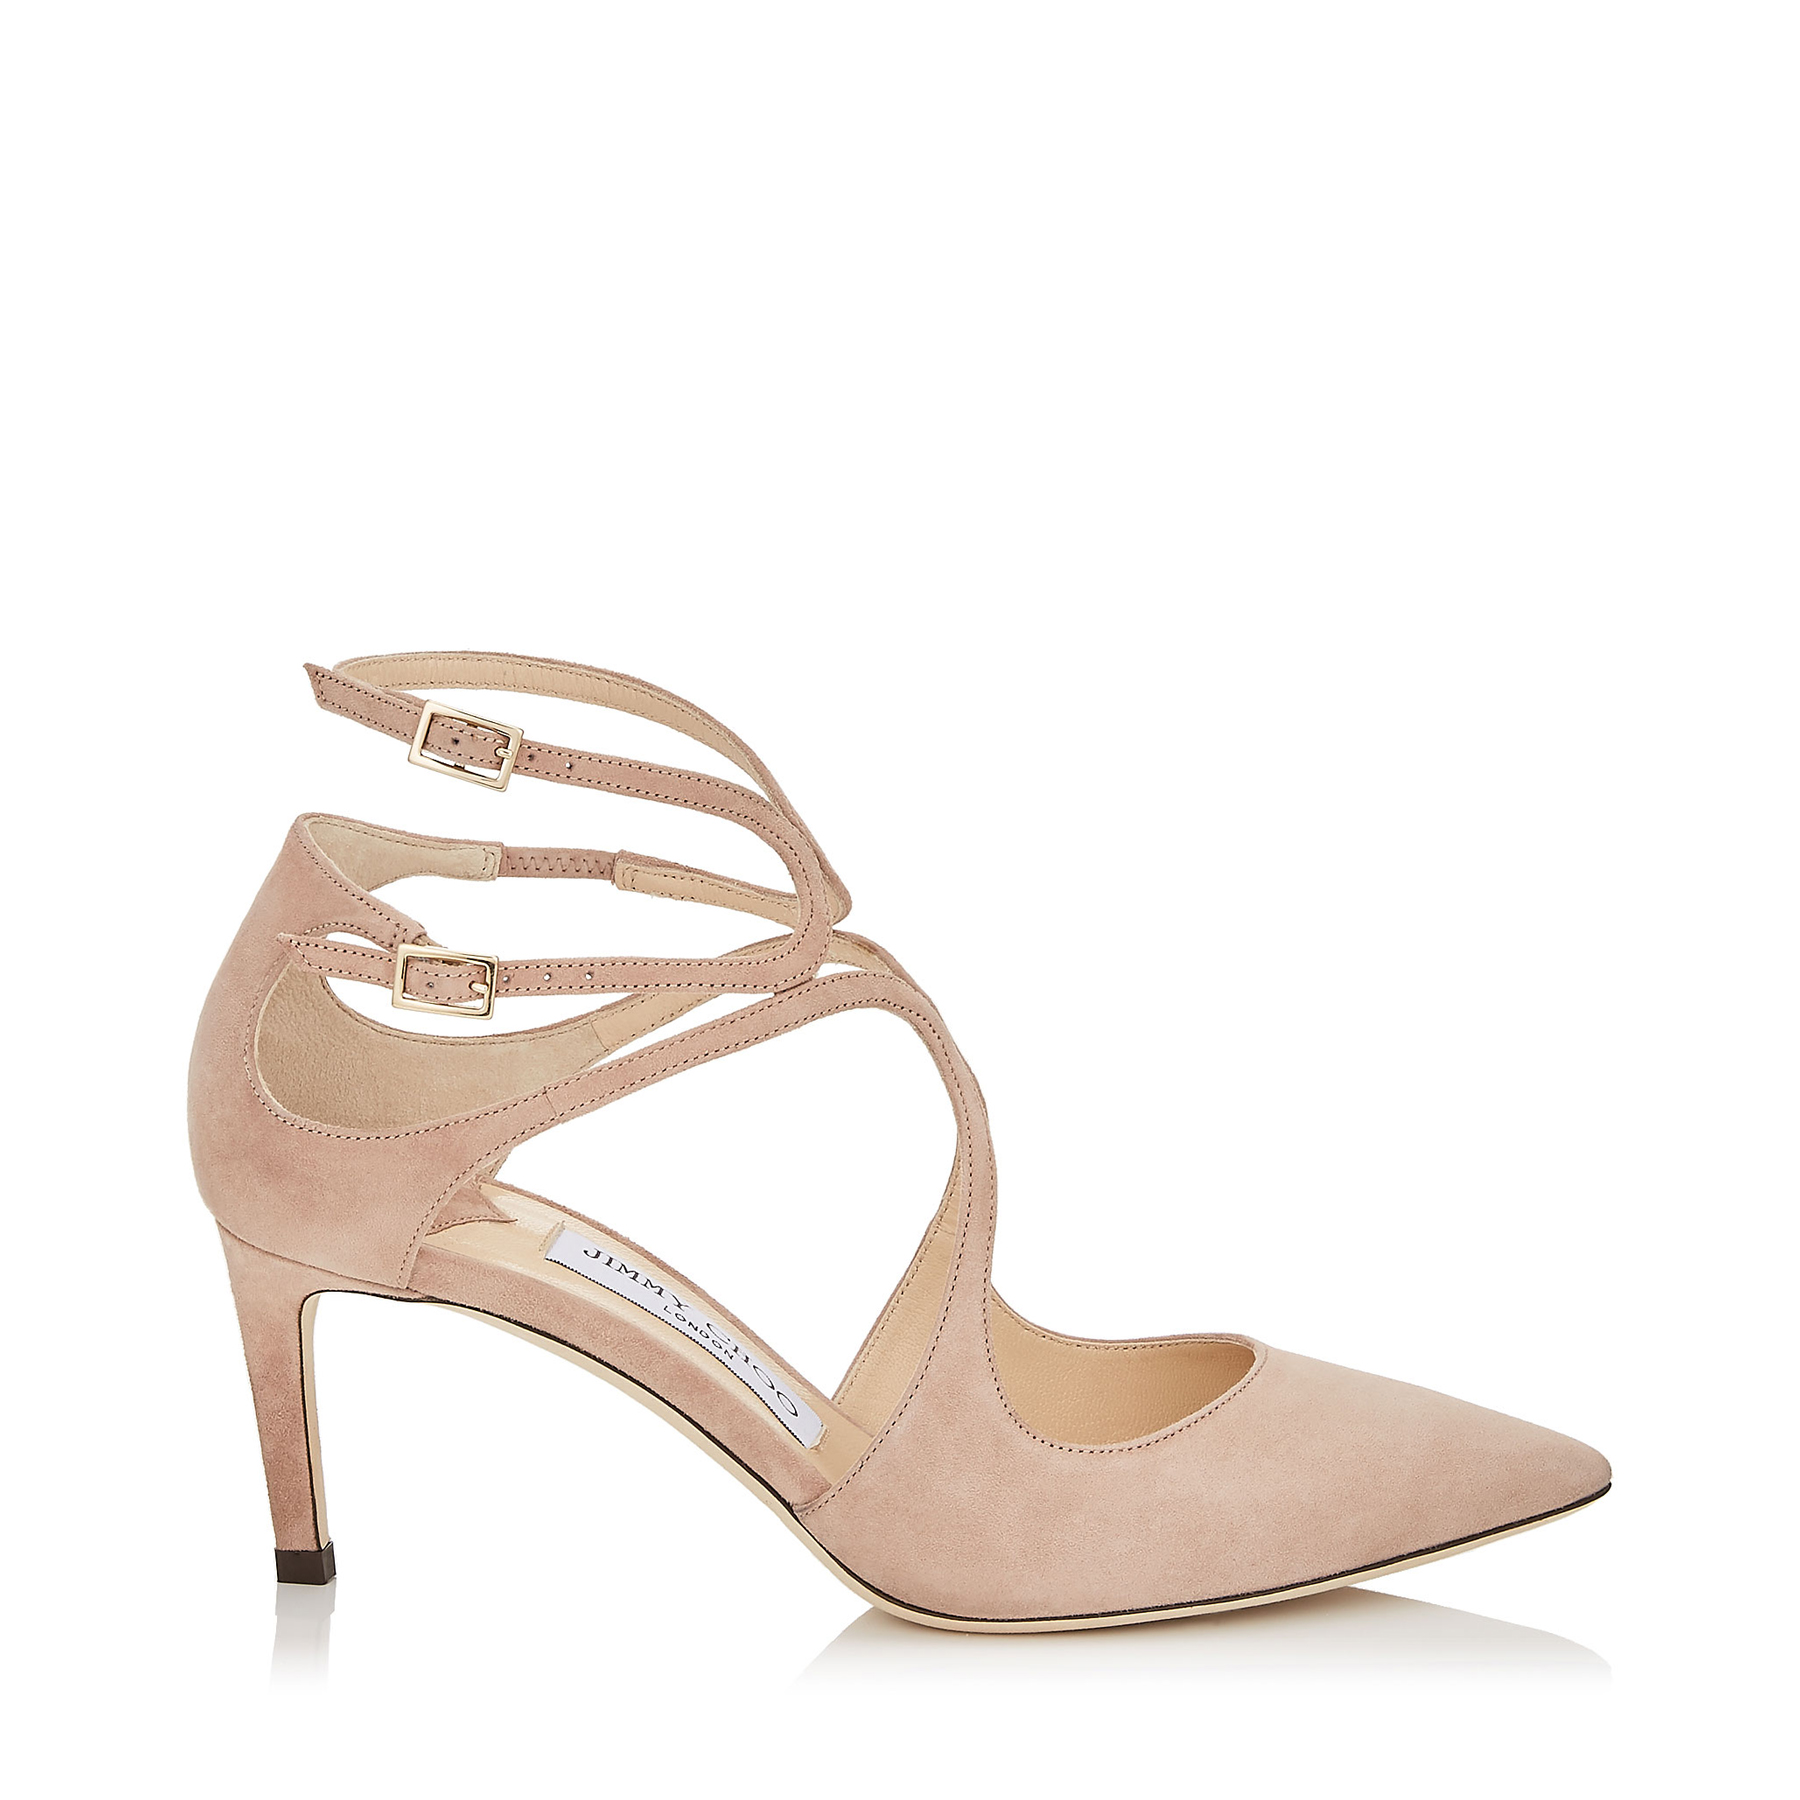 LANCER 65 Ballet Pink Suede Pointy Toe Pumps by Jimmy Choo